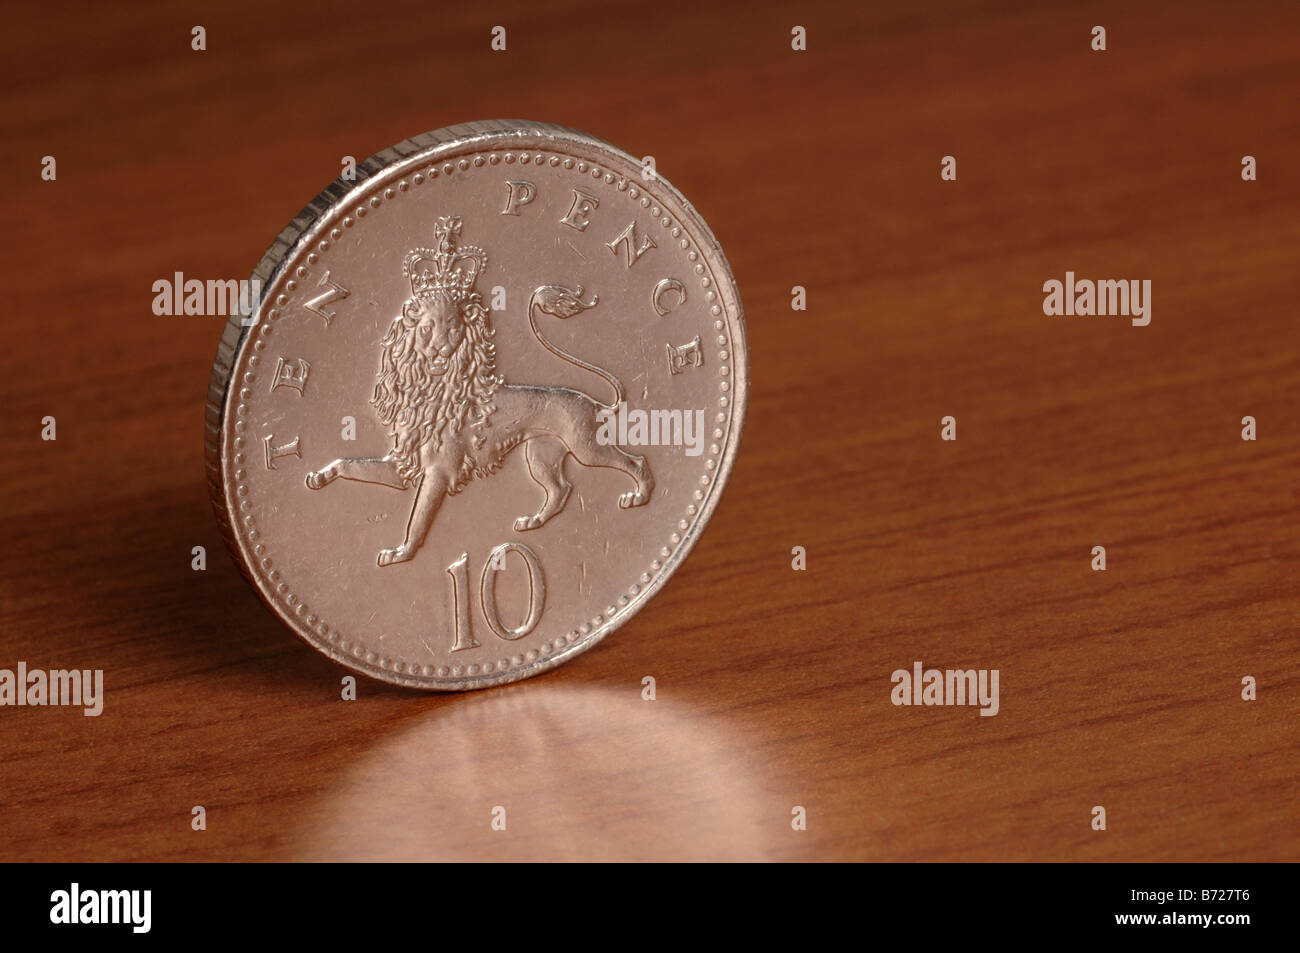 10 pence coin - Stock Image